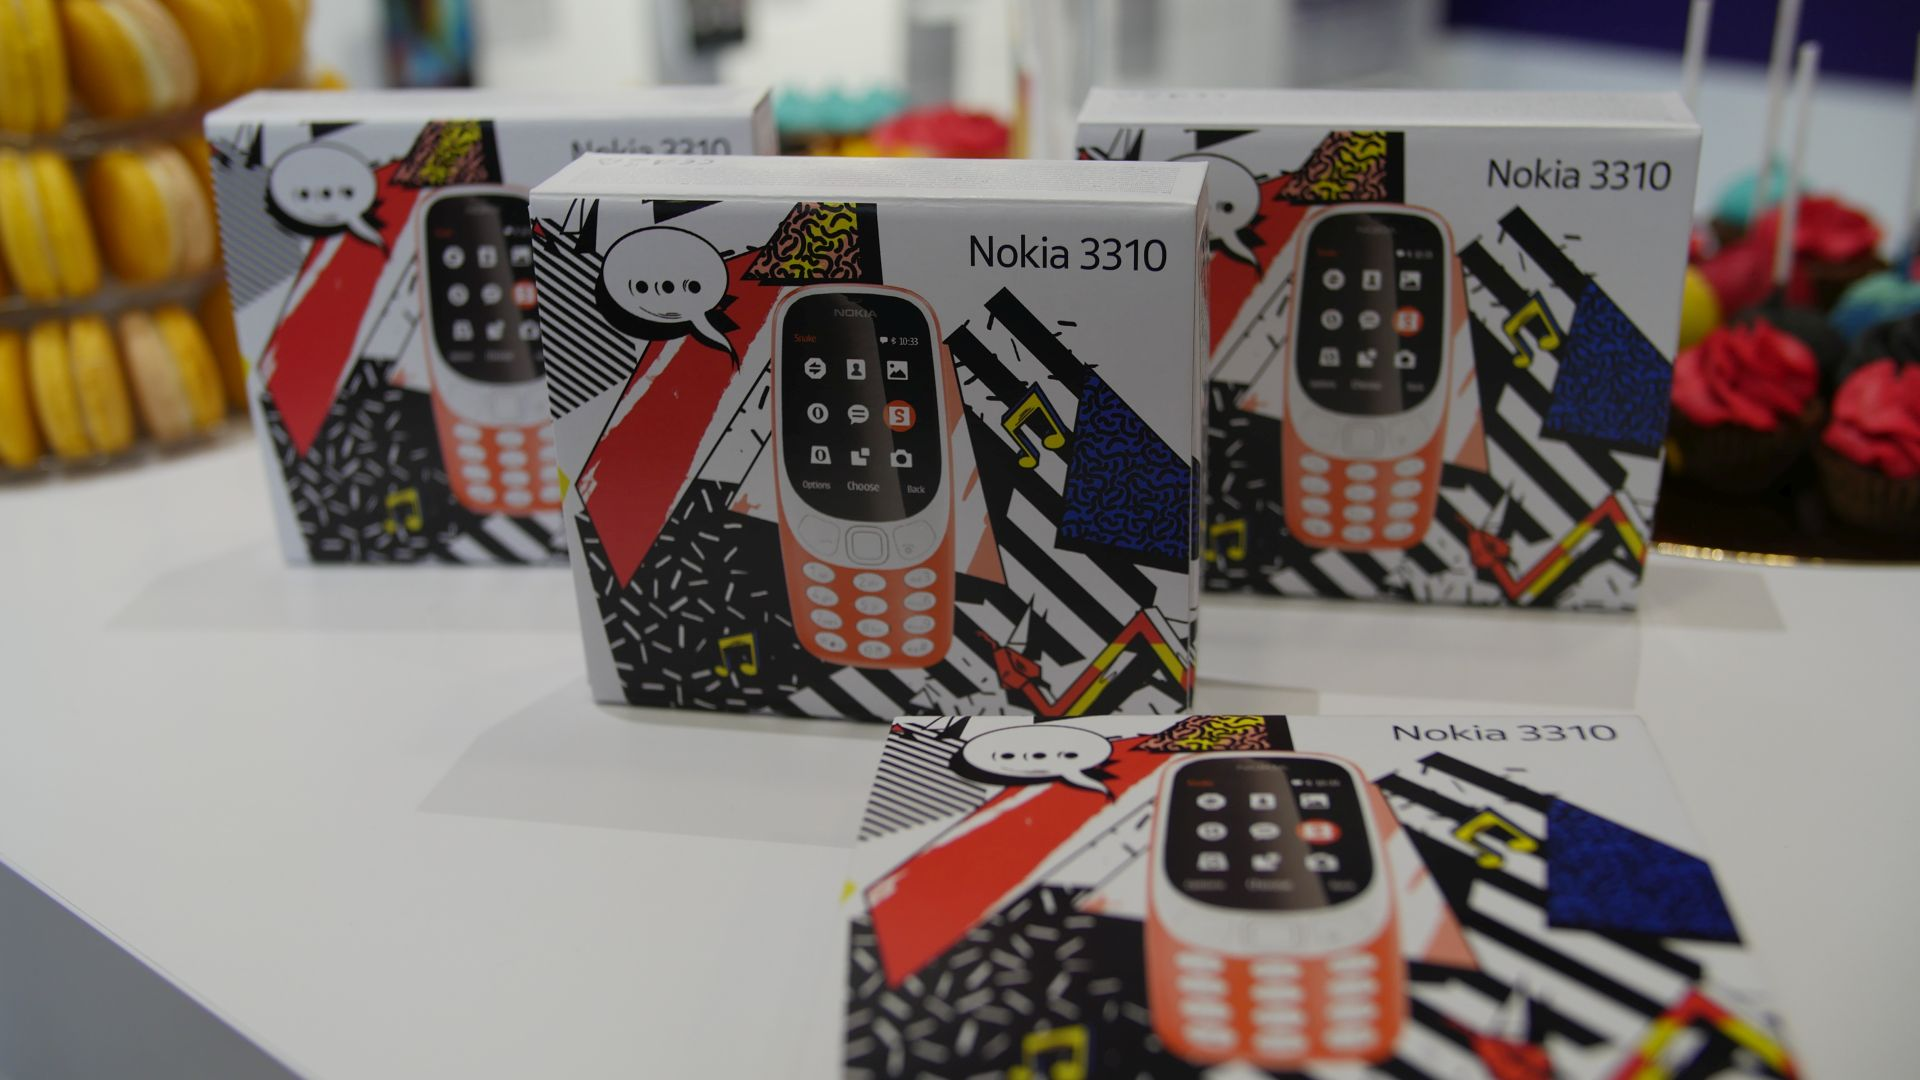 Snake is Back! Relaunch of the new Nokia 3310 phone - Monday